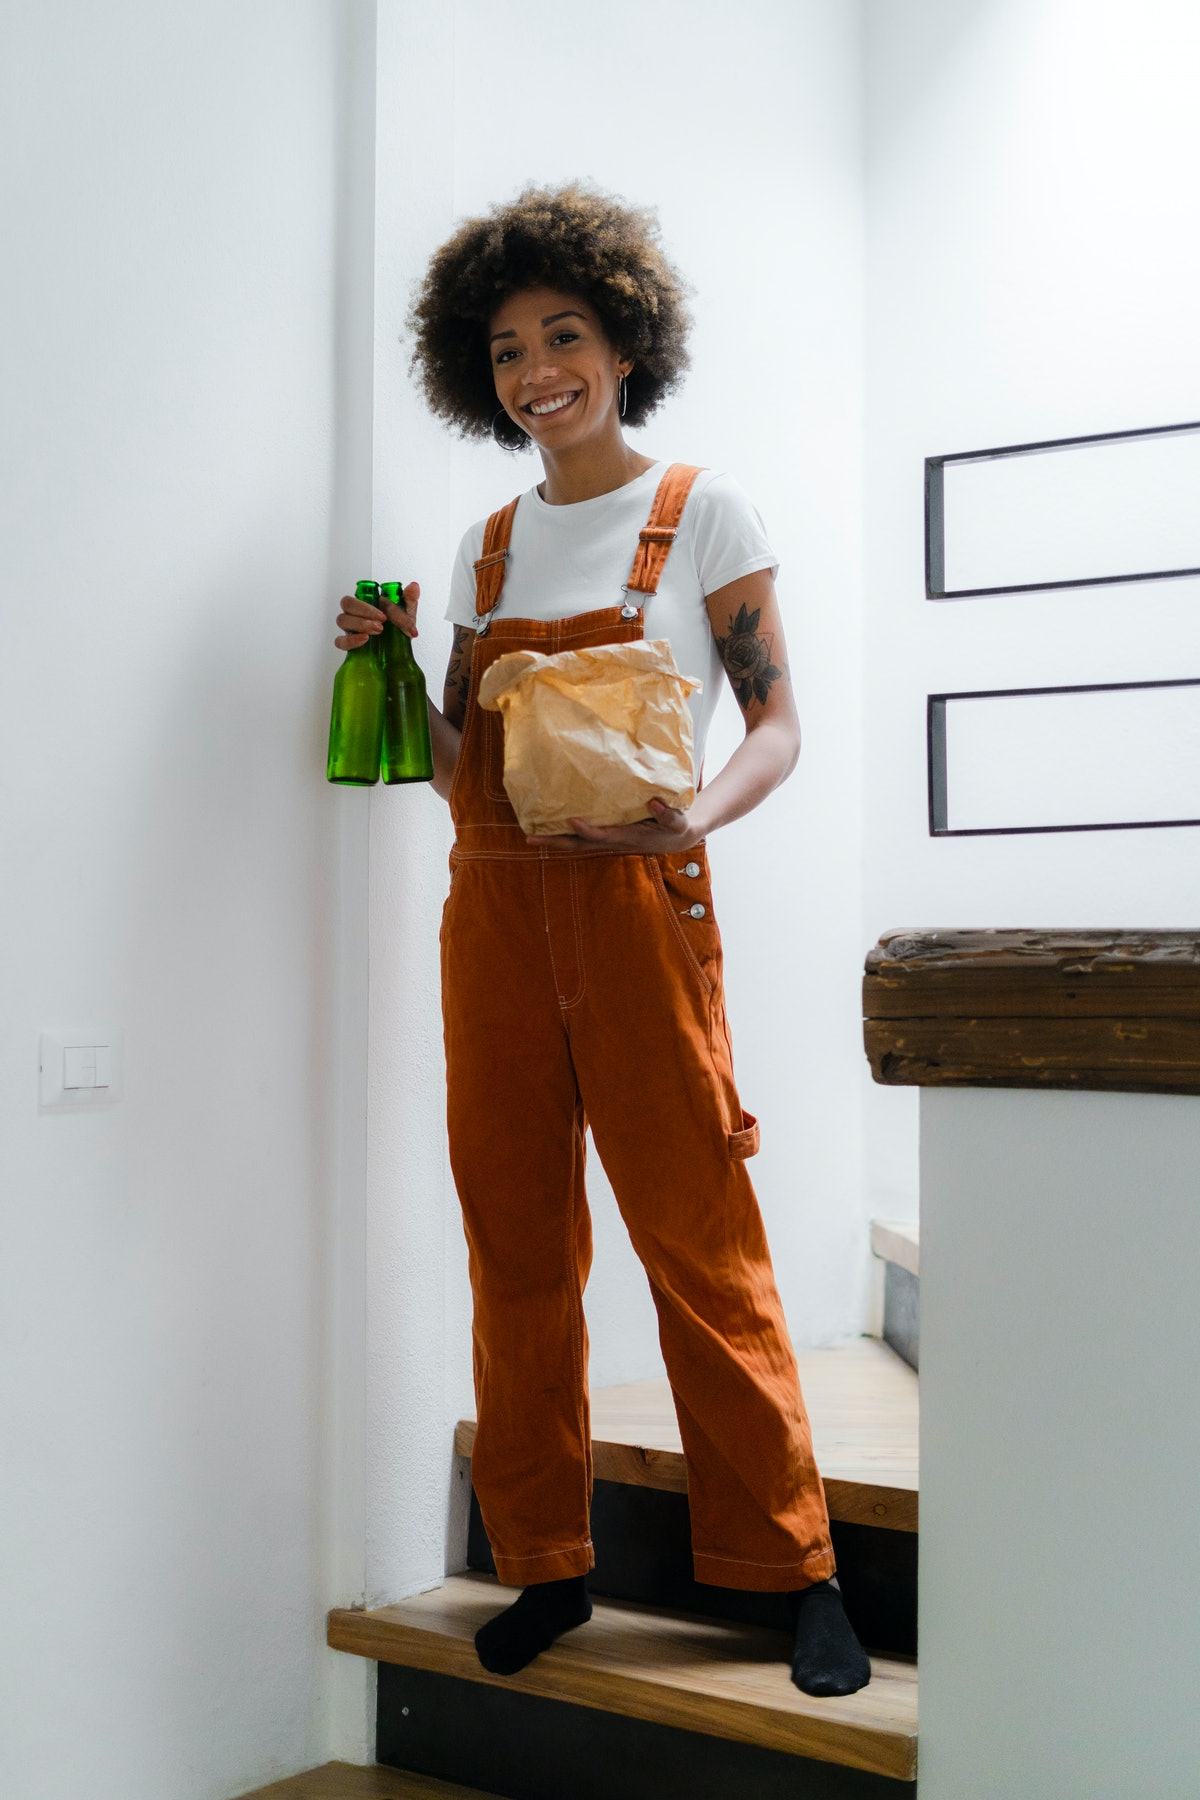 A young and stylish Black woman holds beer bottles and a bag of takeout food while posing on the stairs of her apartment.